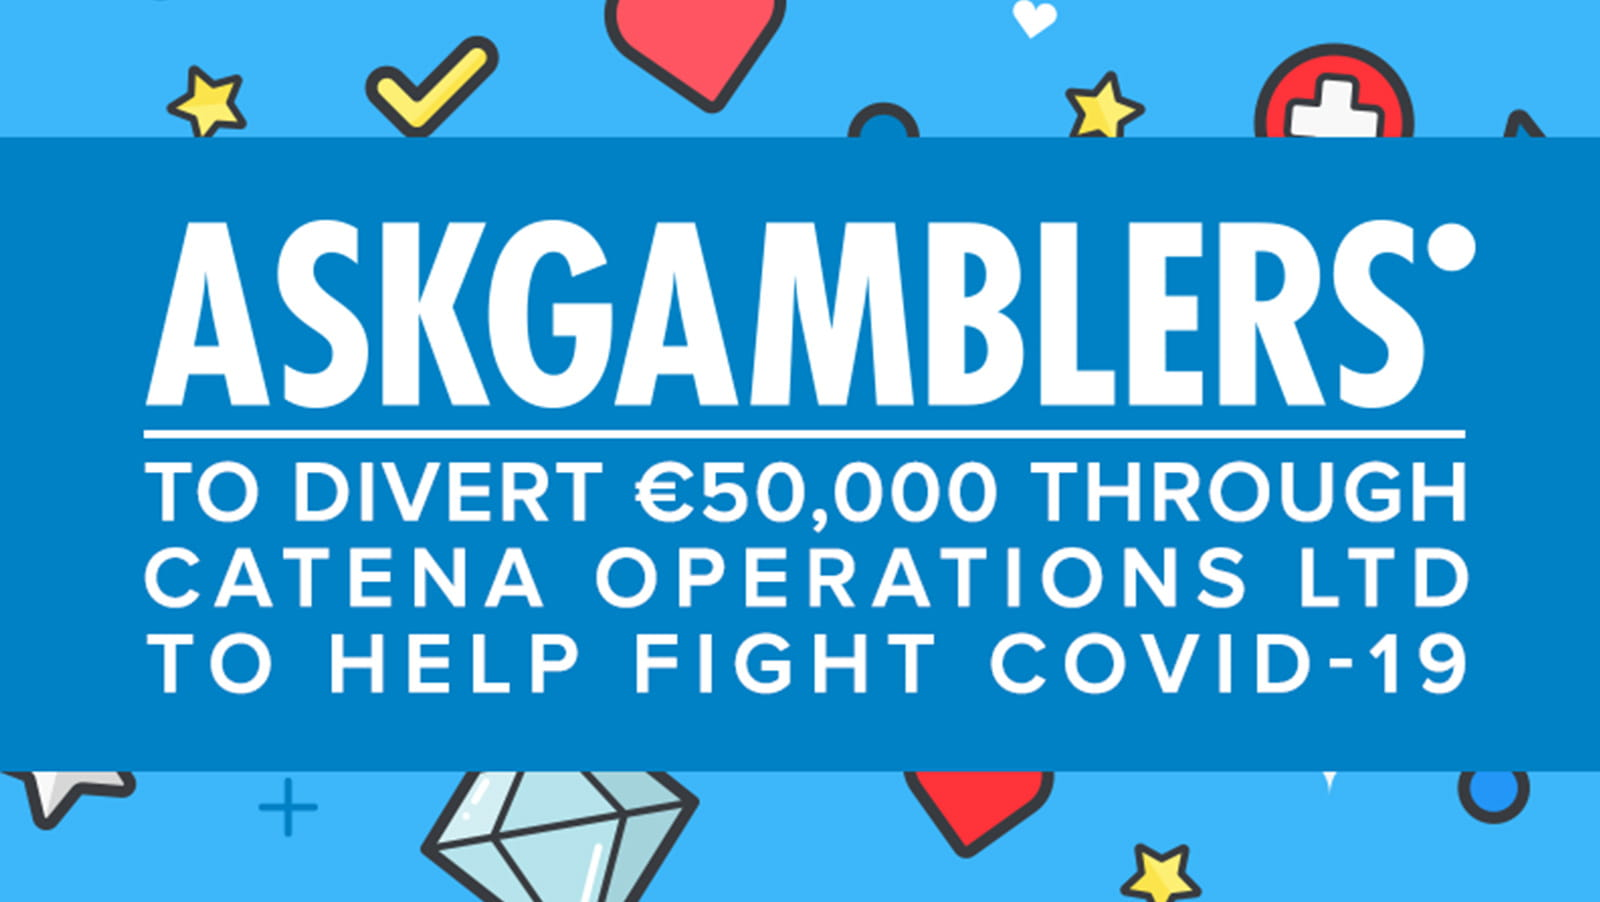 askgamblers-to-divert-e50000-through-catena-operations-ltd-to-help-fight-covid-19-min